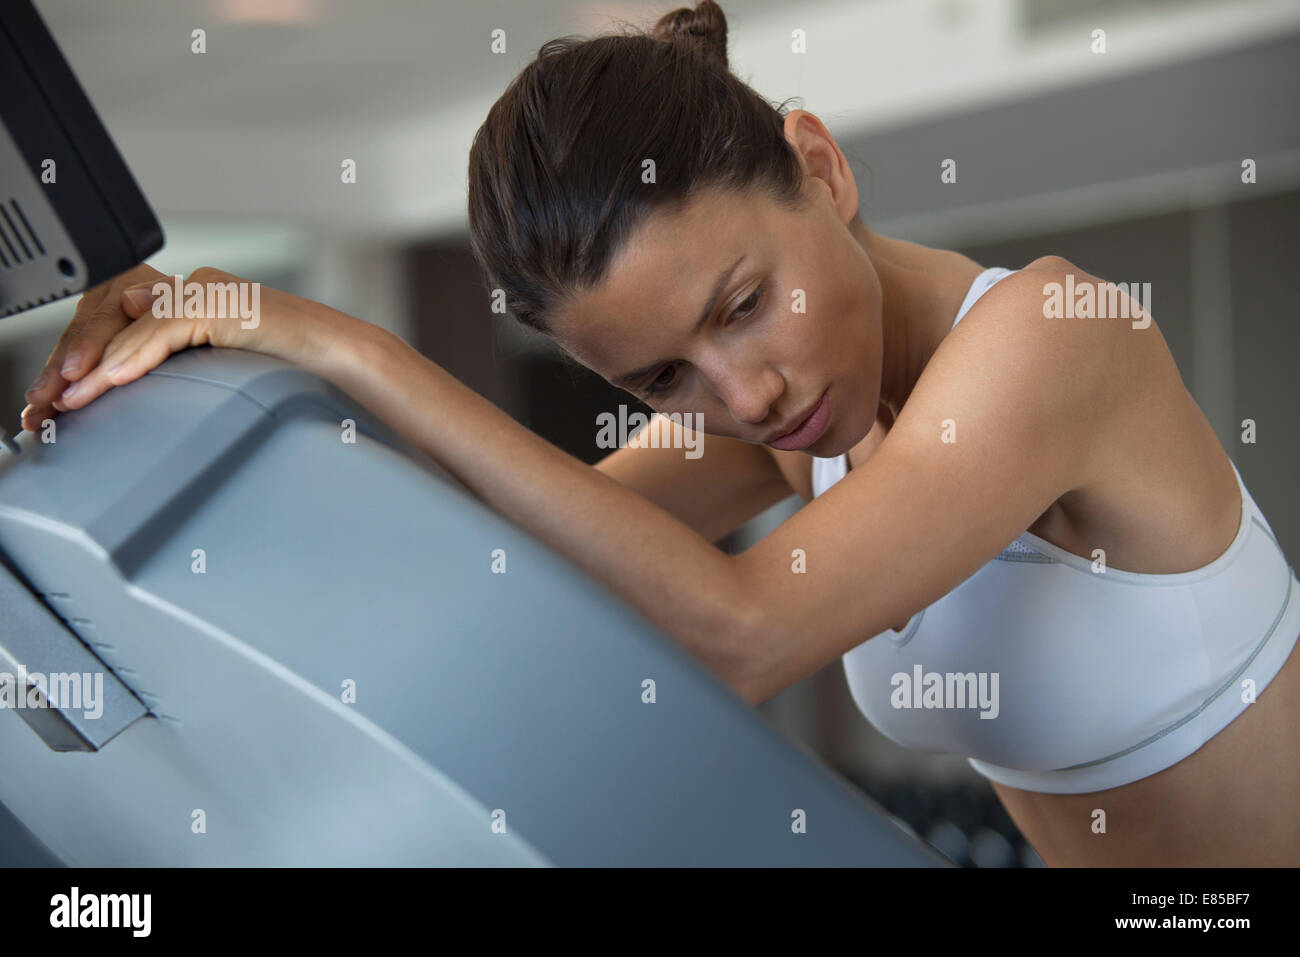 Woman resting on exercise machine in health club - Stock Image